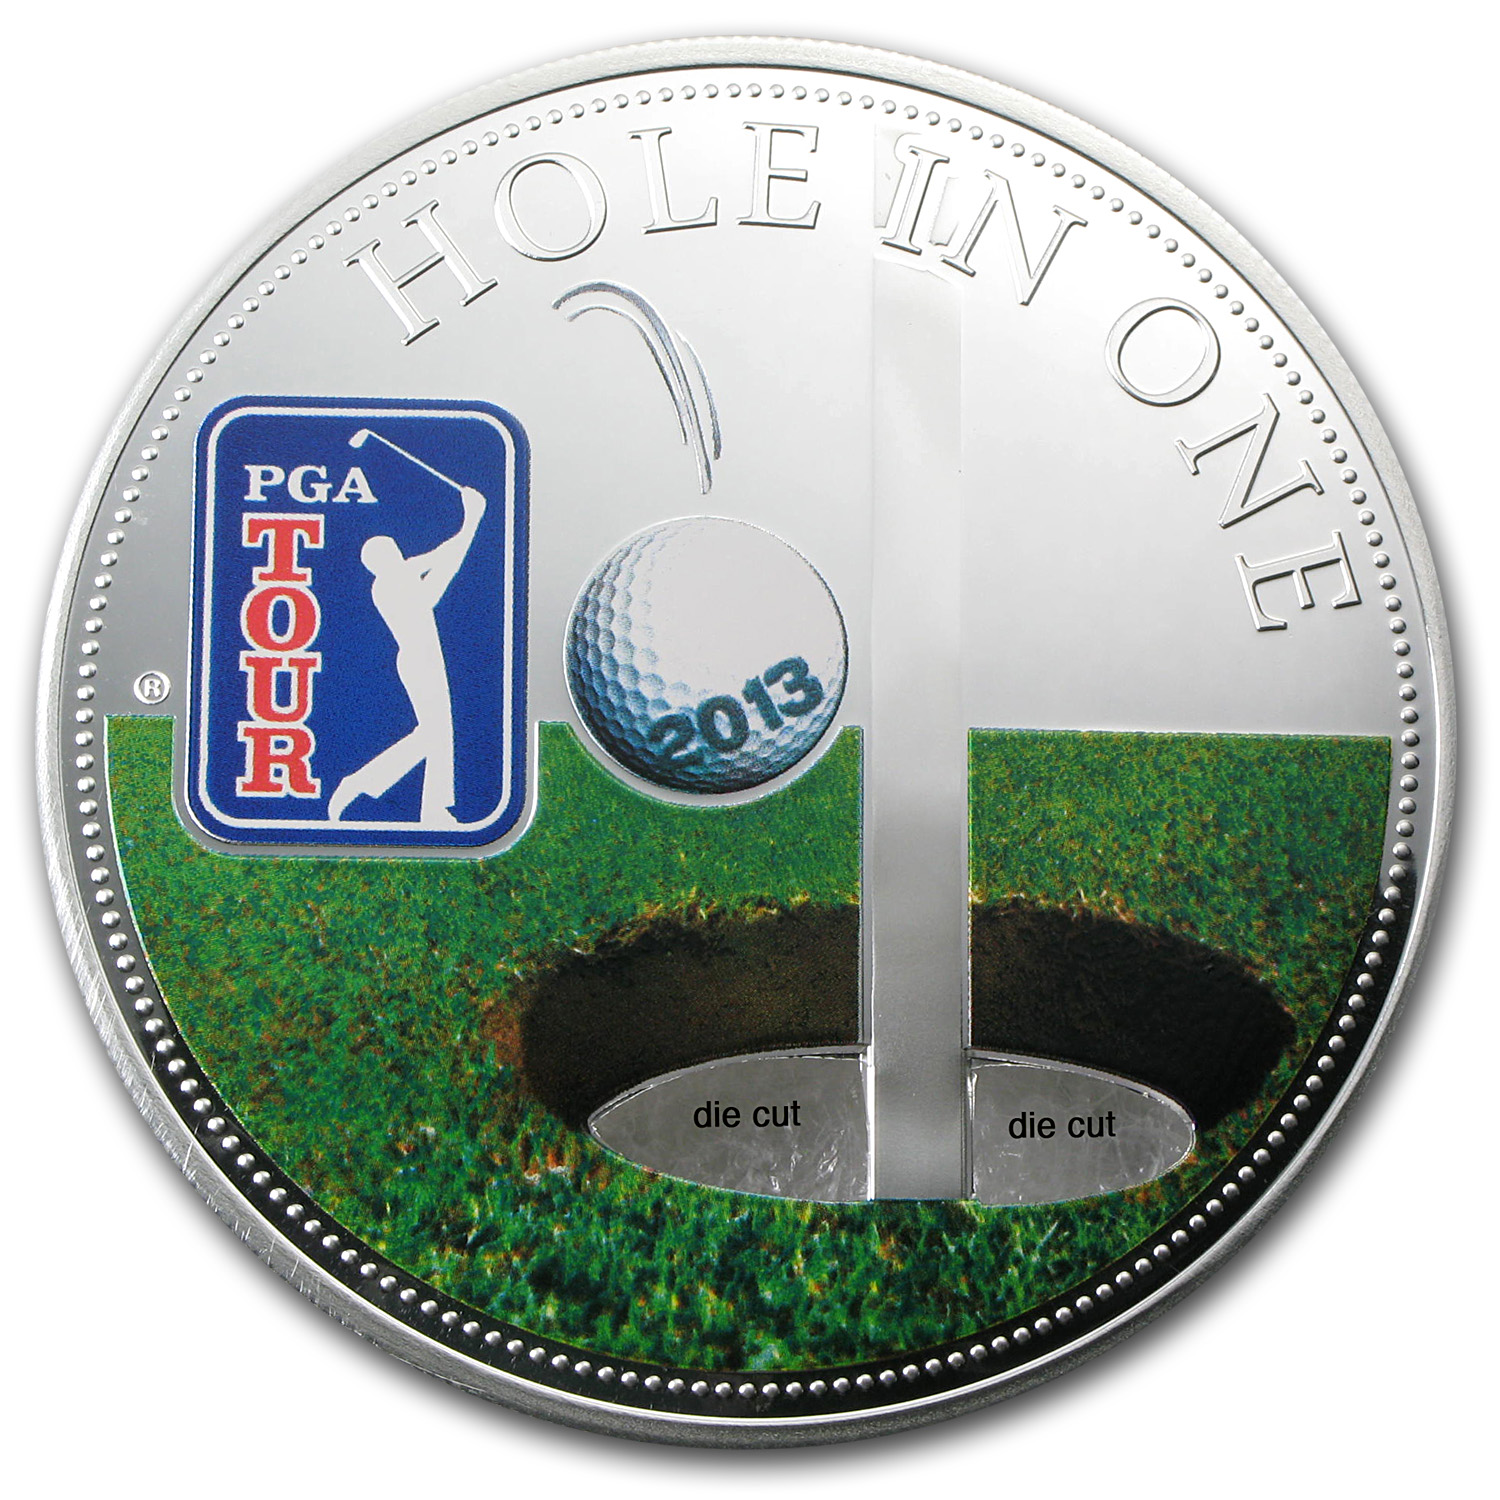 2013 Cook Islands Proof Silver $5 PGA Tour Hole in One